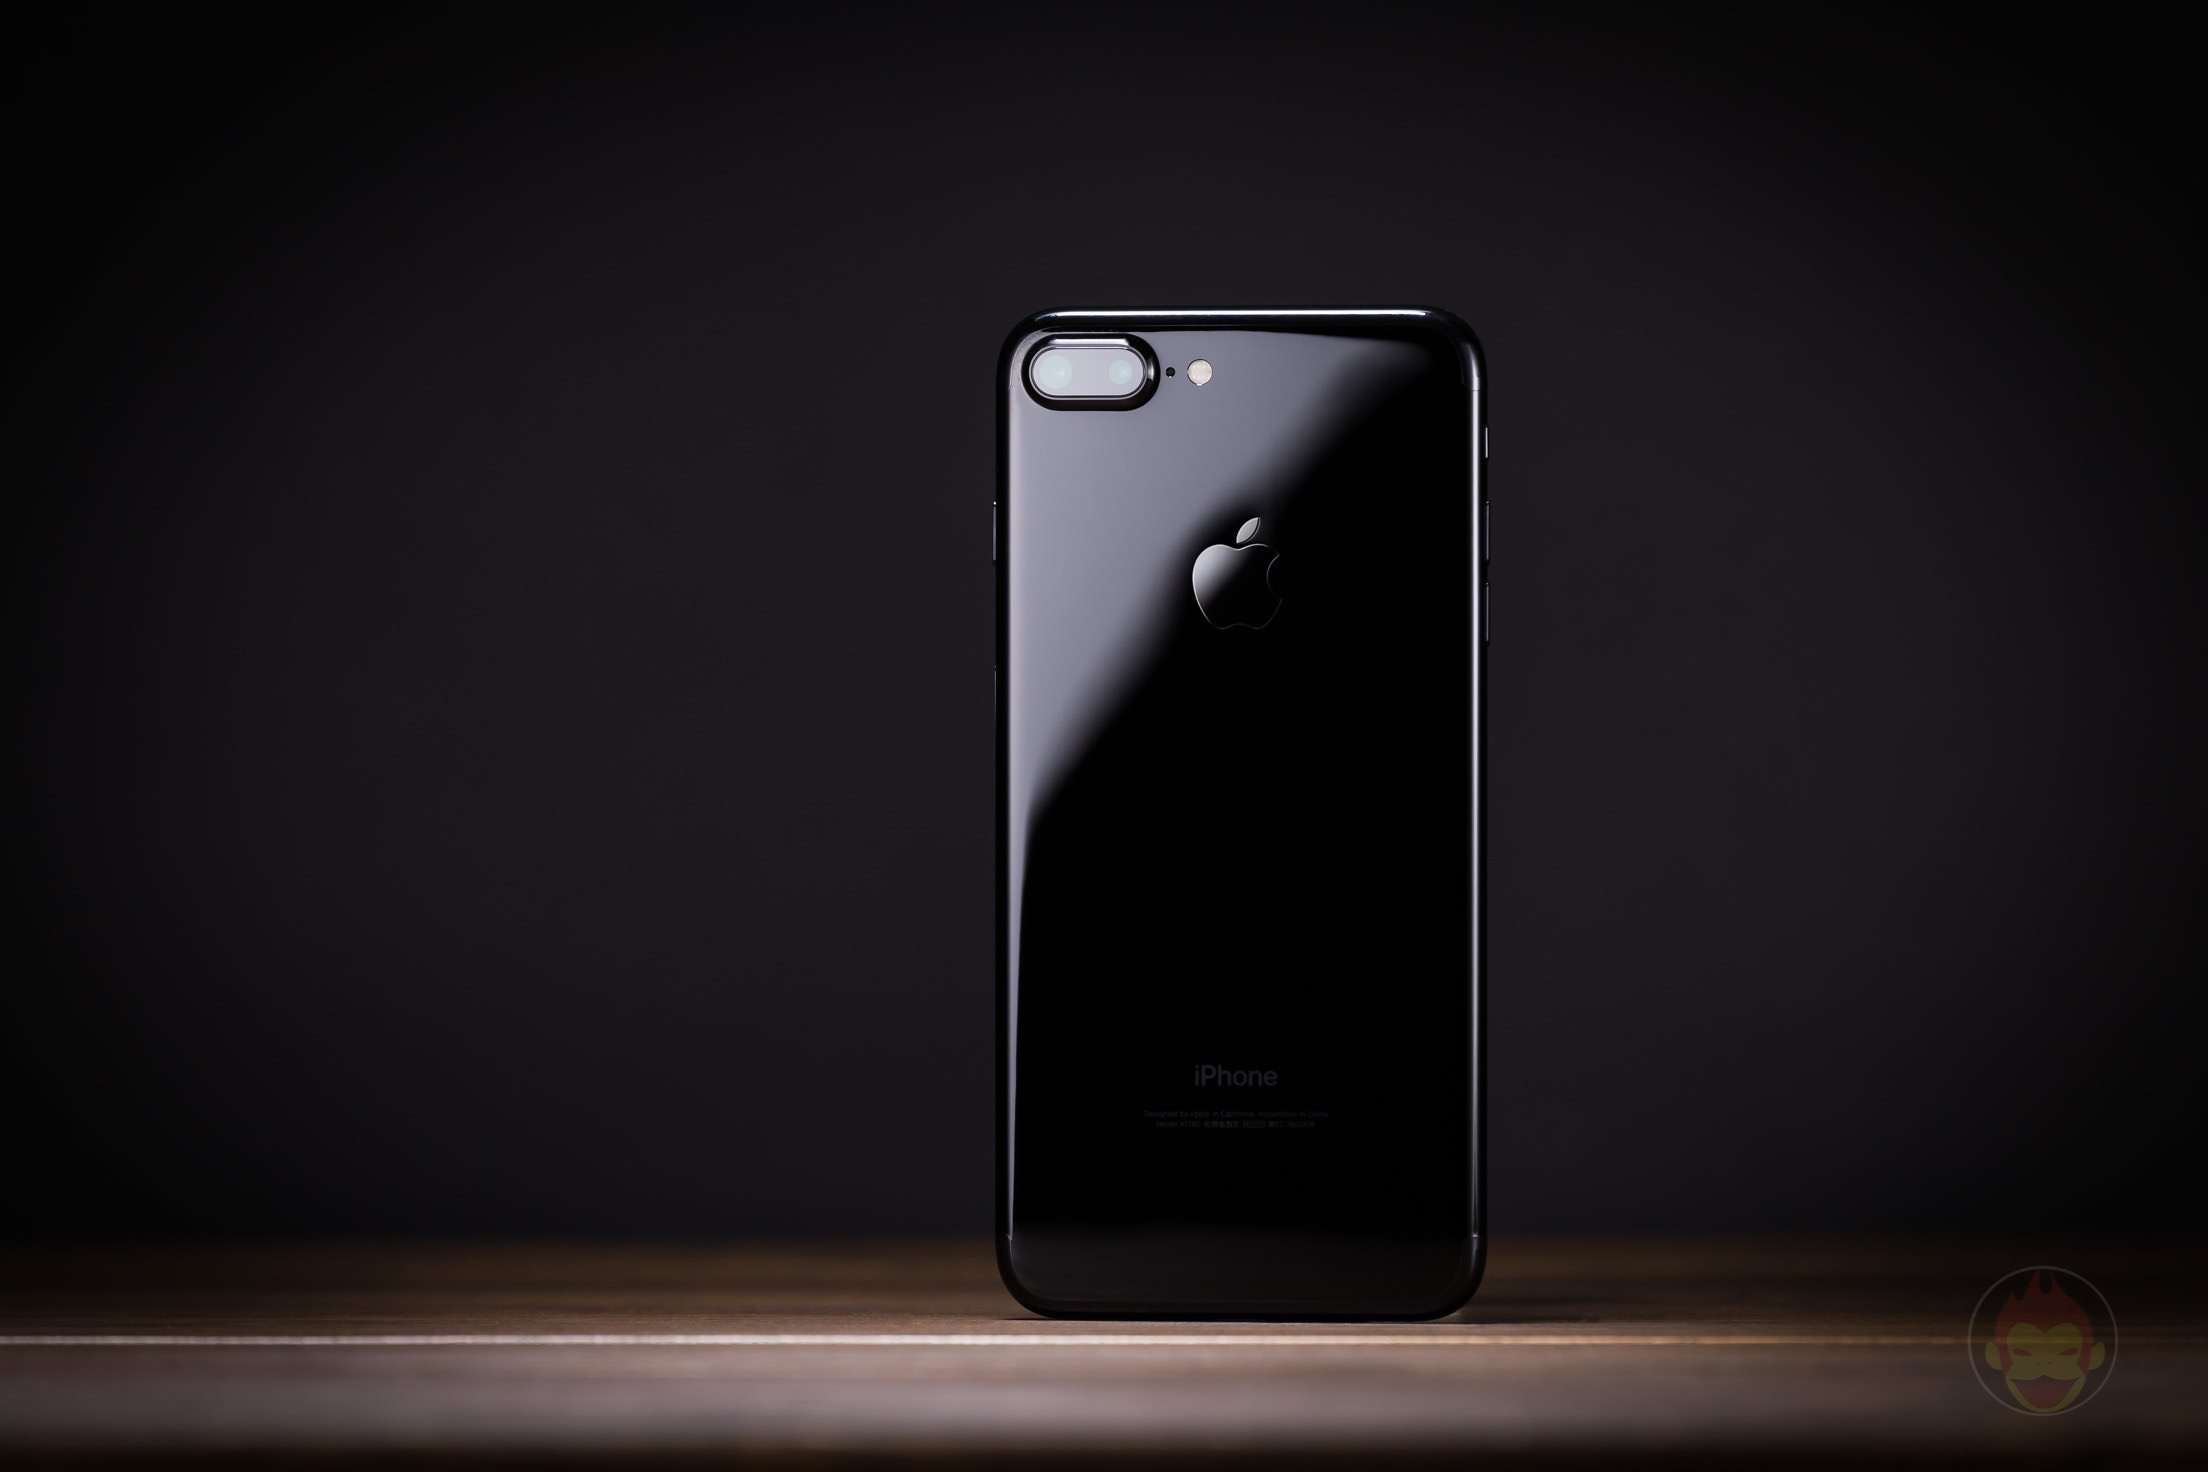 iPhone-7-Plus-Jet-Black-Design-review-05.jpg